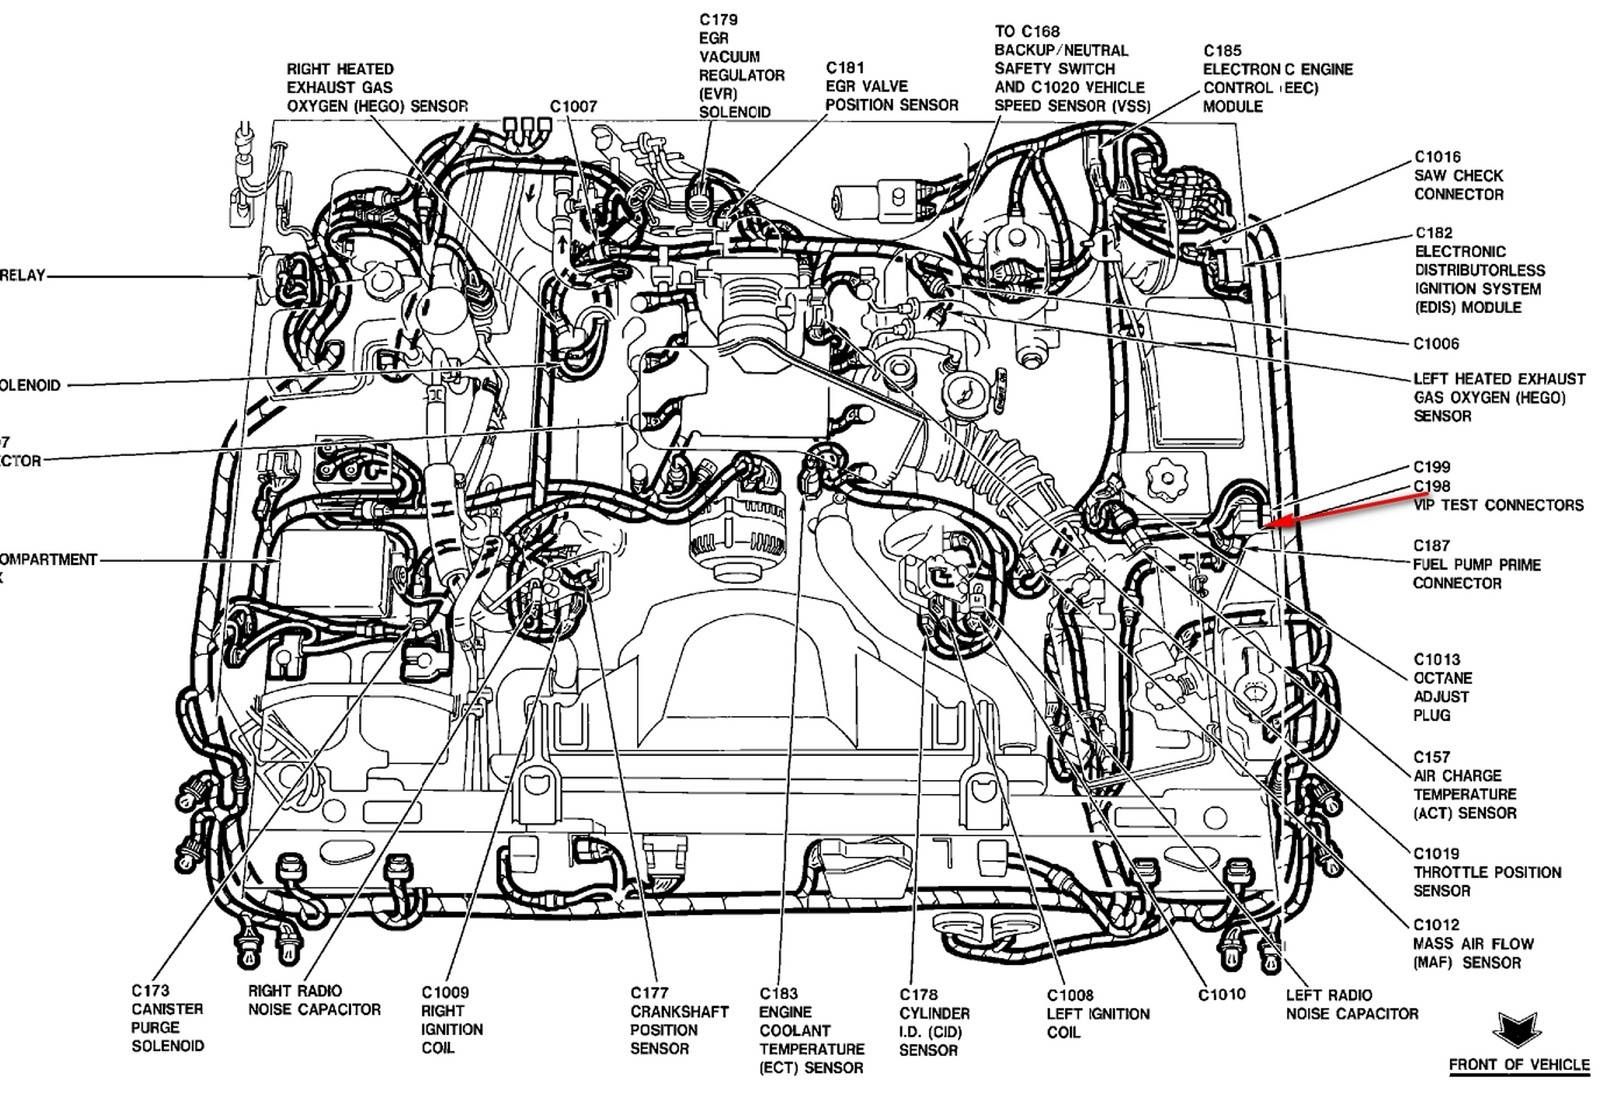 Discussion T29372 ds554767 on vacuum line diagram 1998 lincoln continental